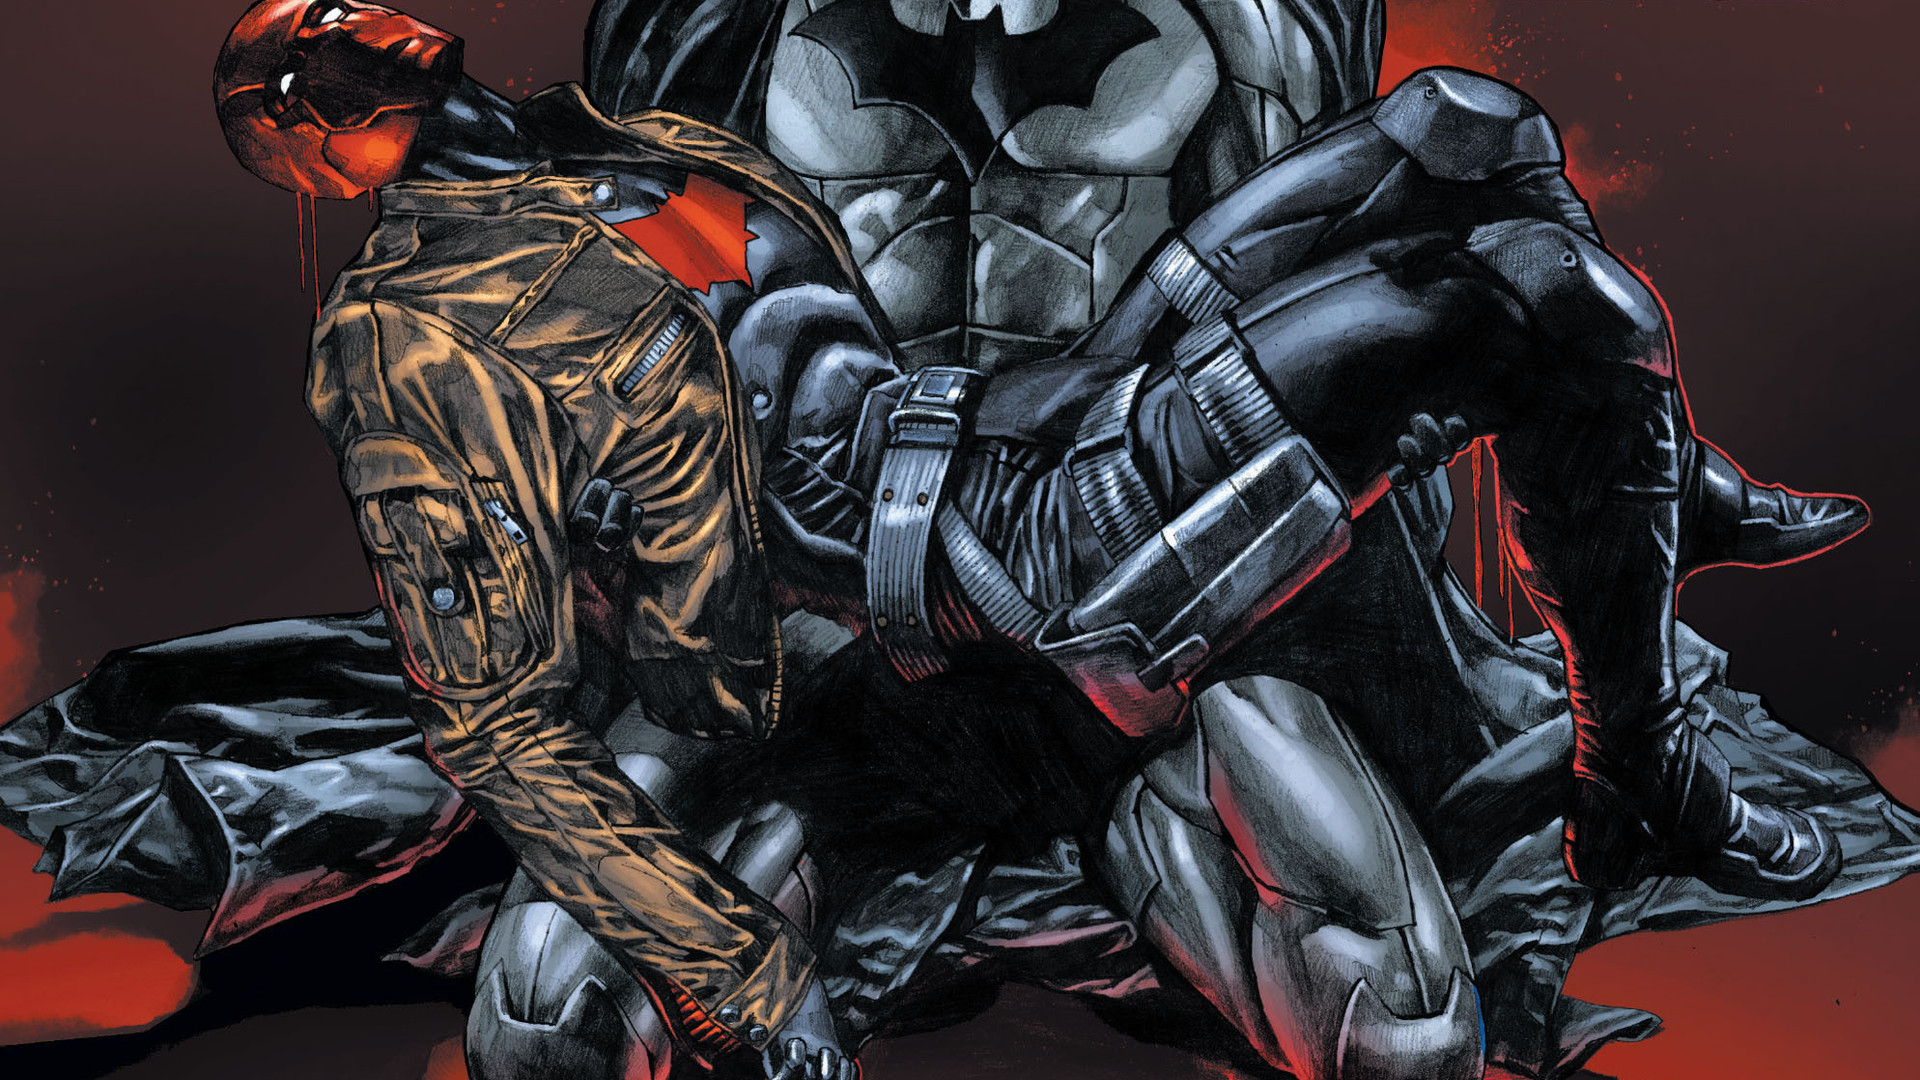 Red Hood Wallpaper 1920x1080: Red Hood And The Outlaws Full HD Wallpaper And Background